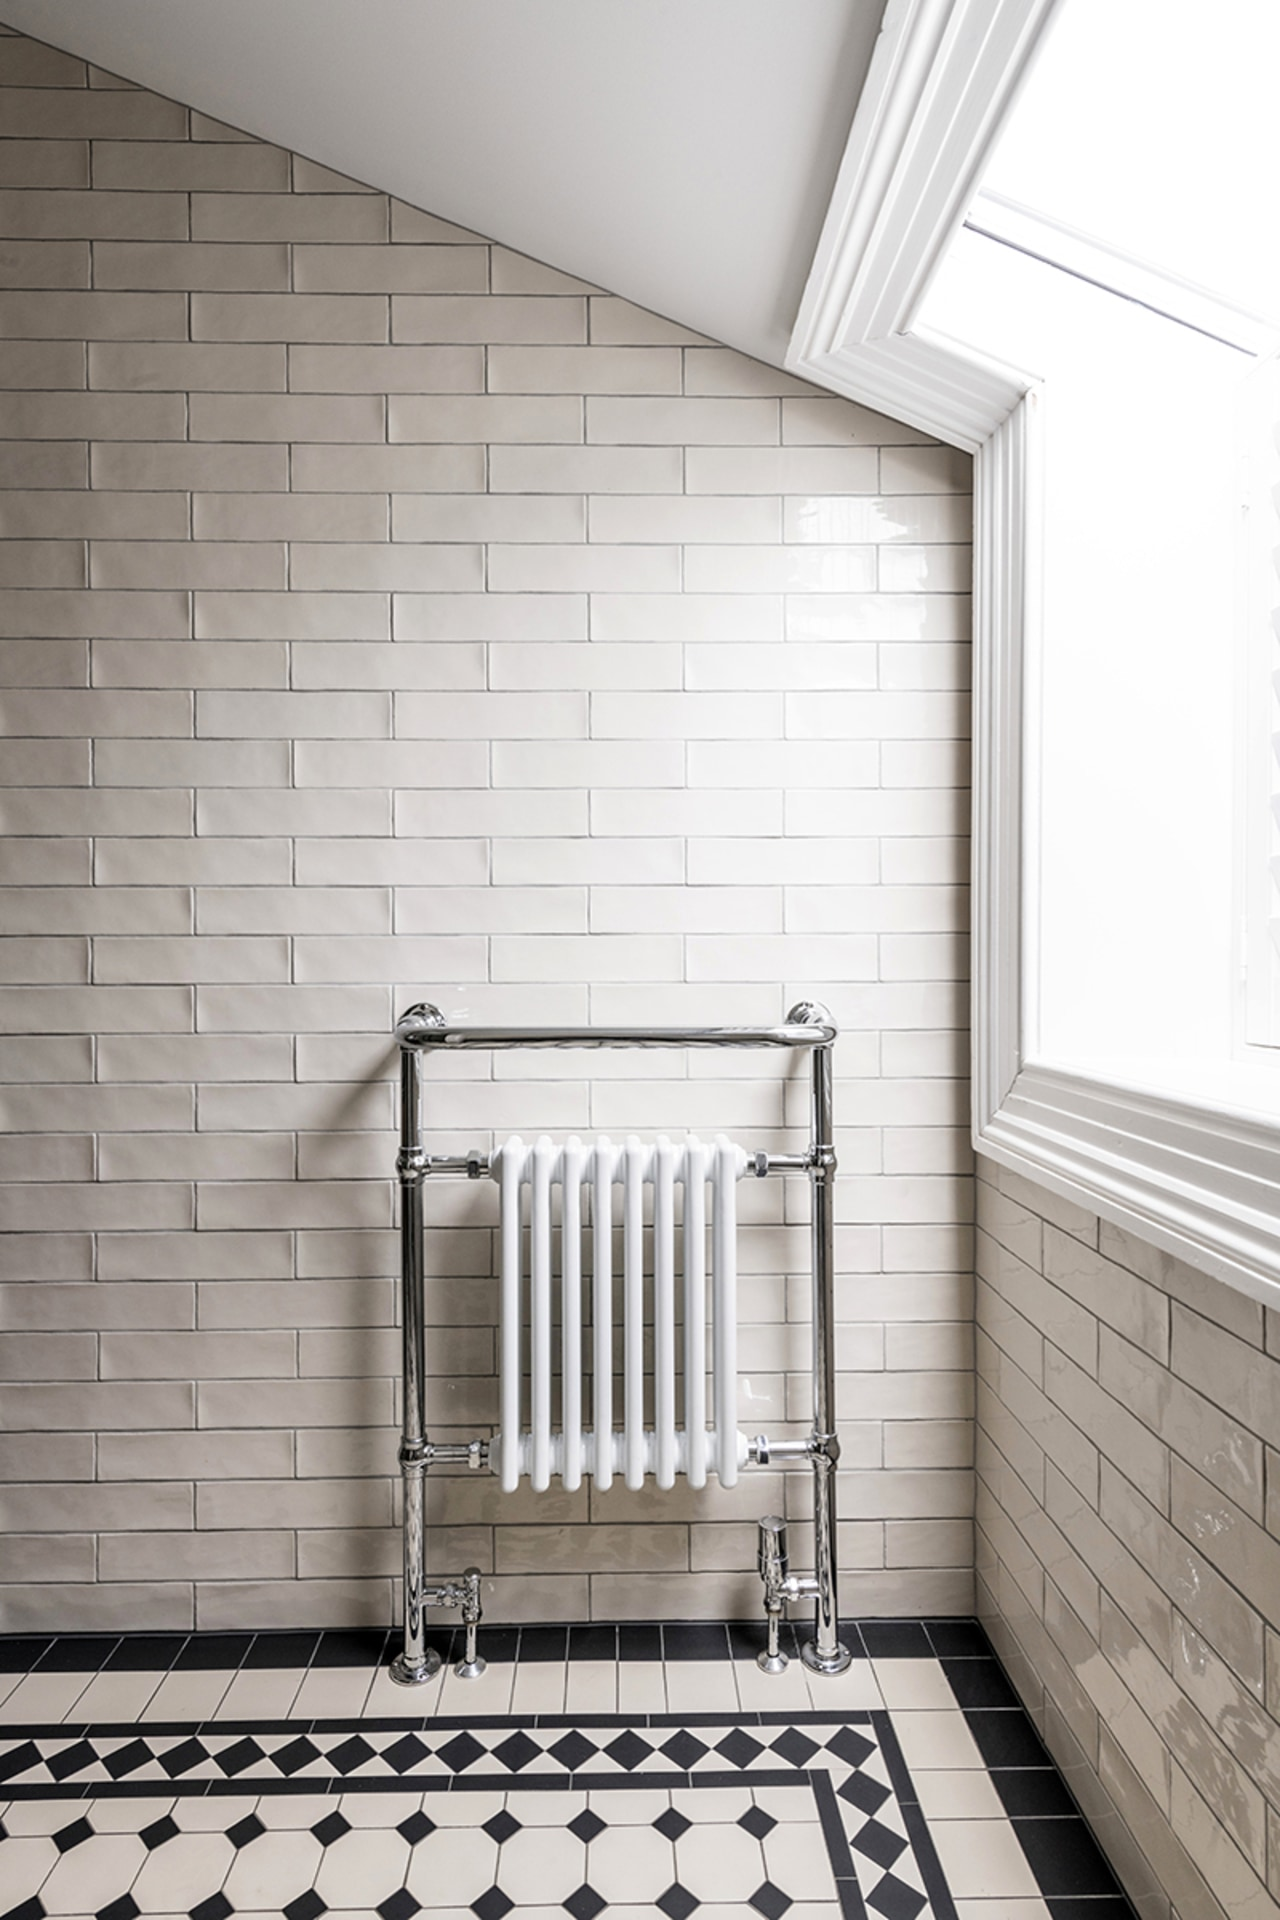 Classic heating meets contemporary add-on functionality. A new white, gray